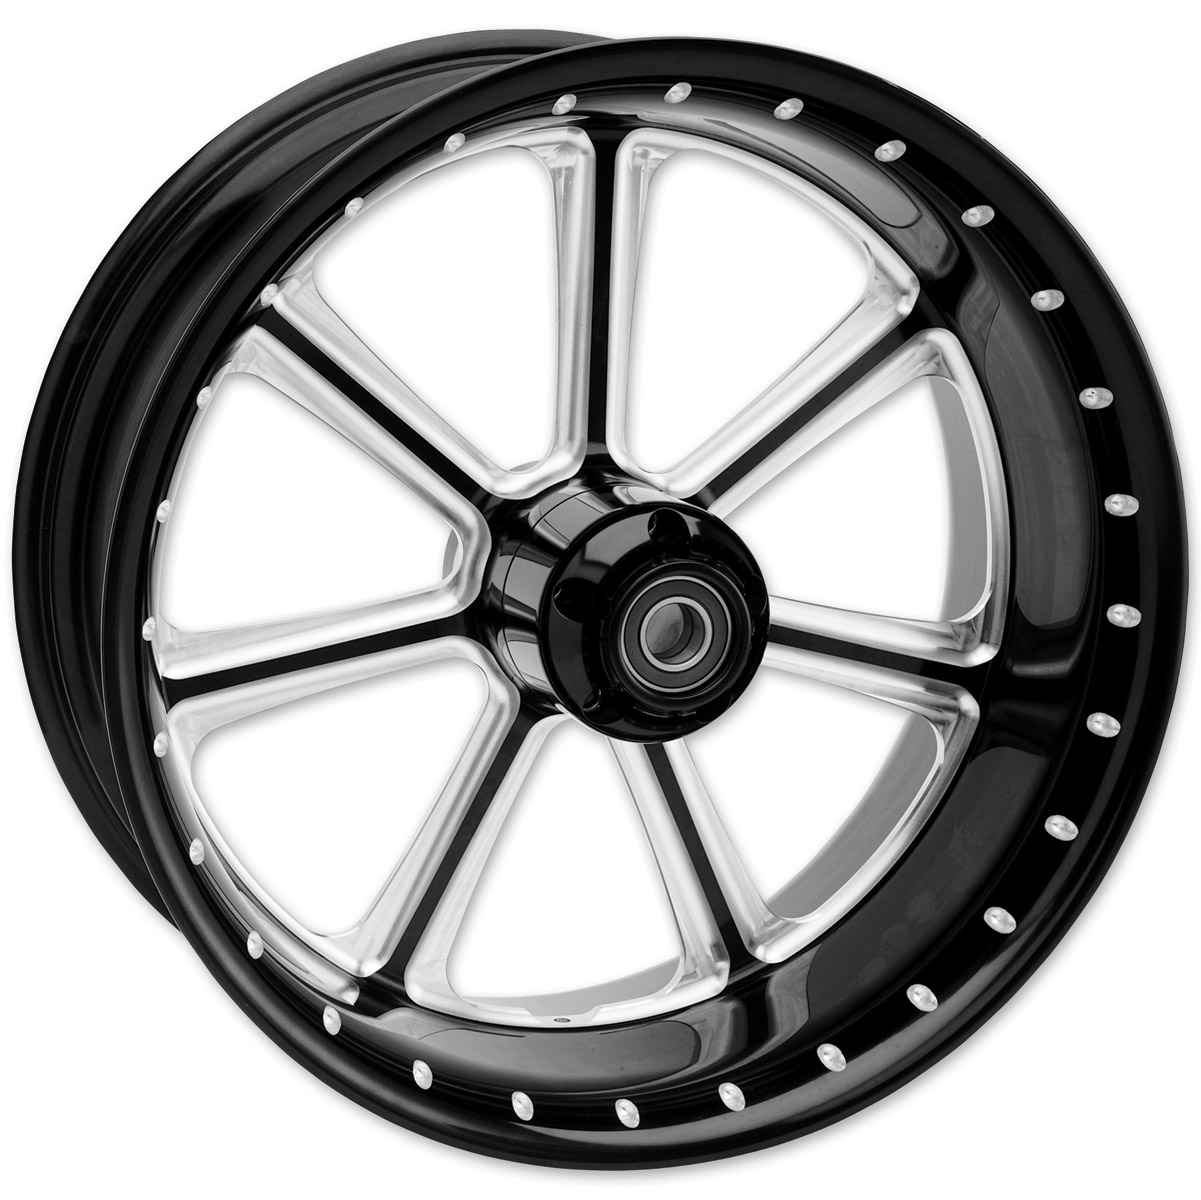 Roland Sands Design Contrast Cut Diesel Rear Wheel, 16 x 3.5